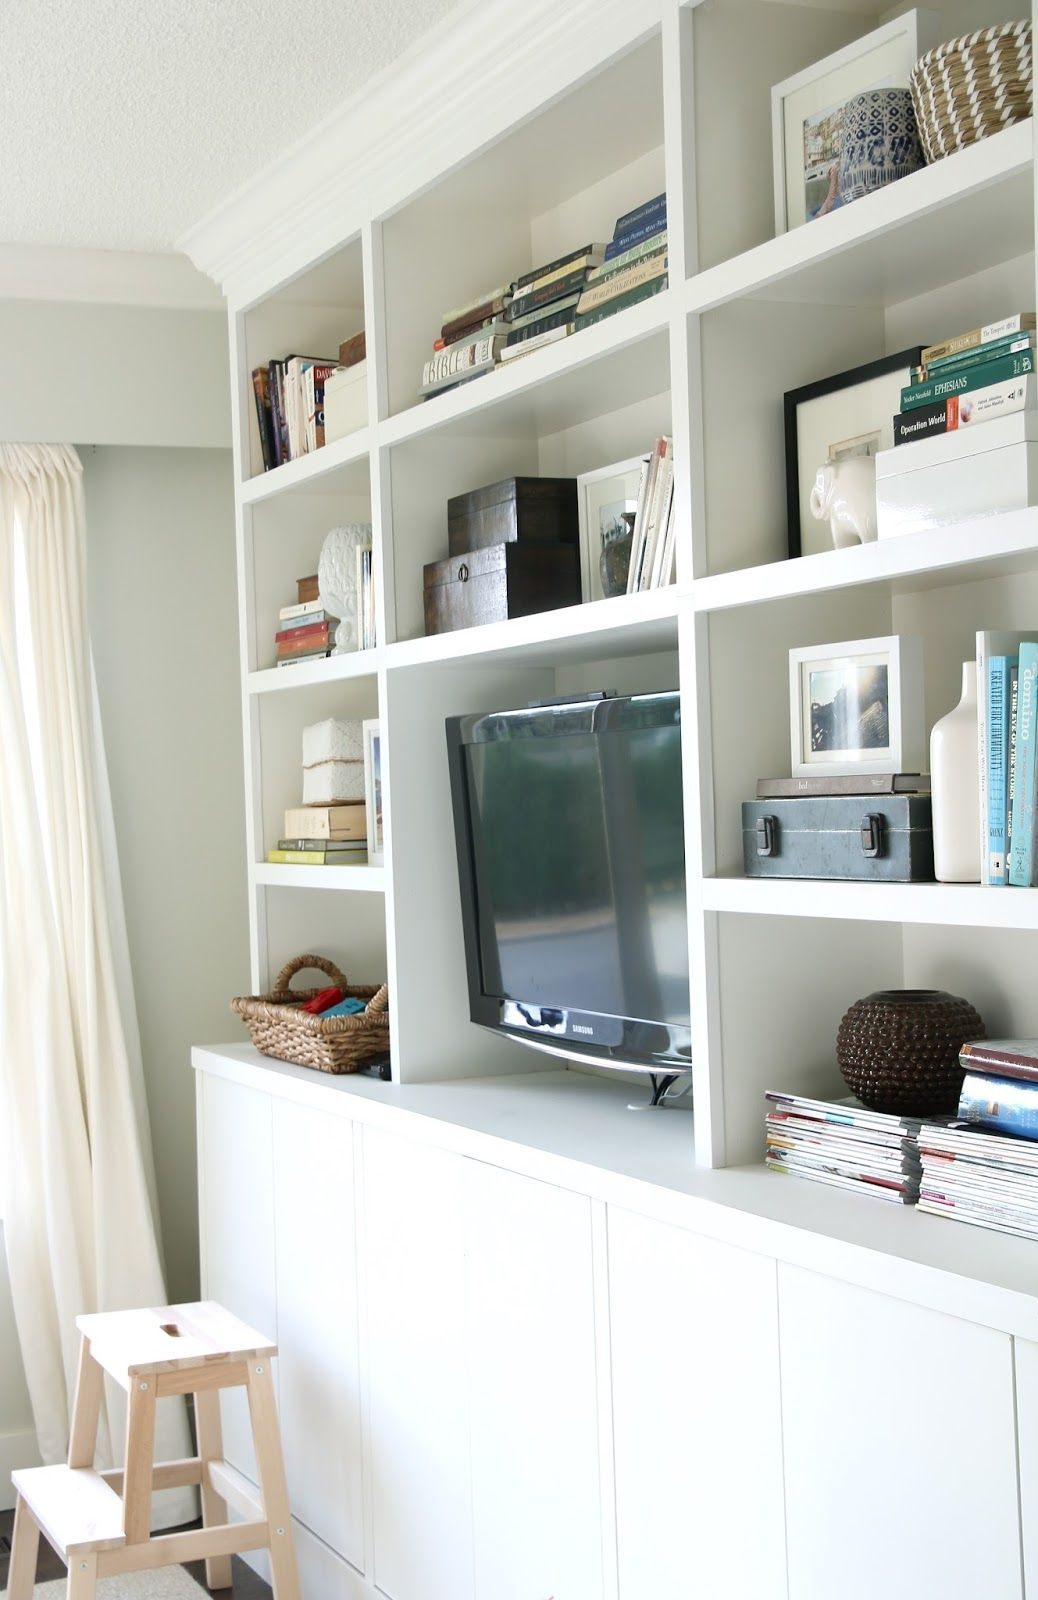 The other day I got the urge to re-arrange my bookcases in the ...